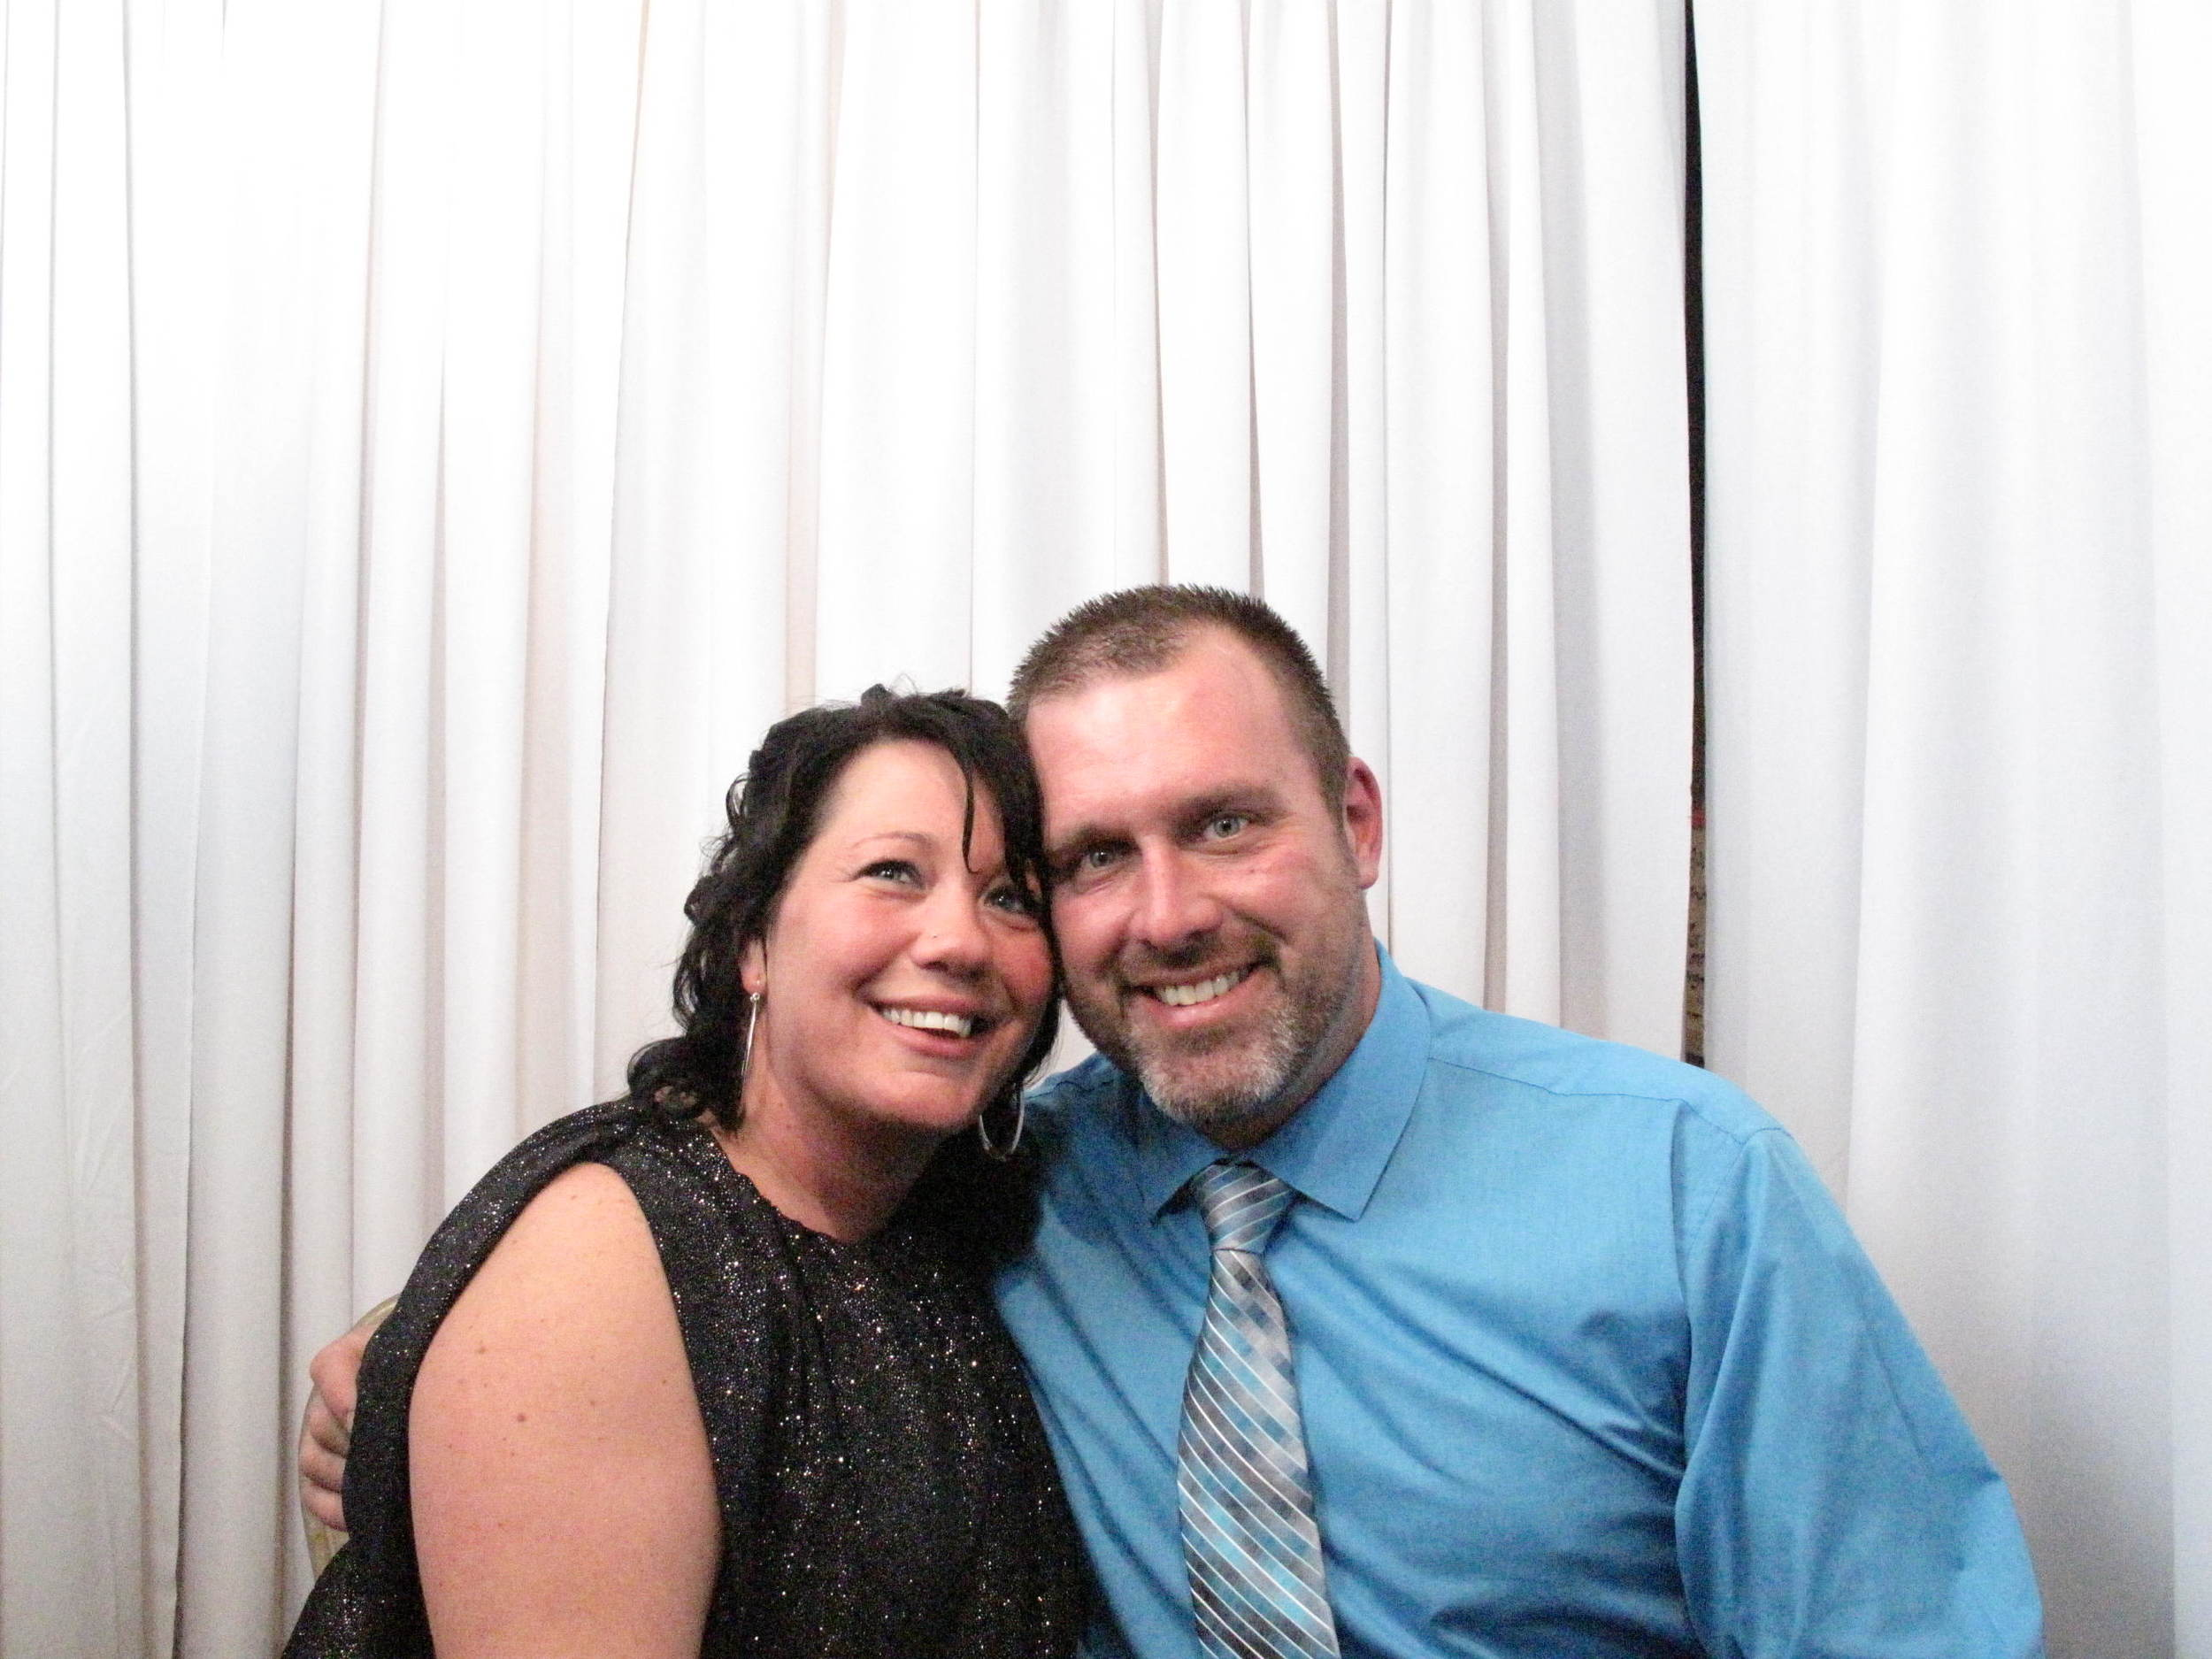 Snapshot Photobooths at Oyster Point in Red Bank, New Jersey